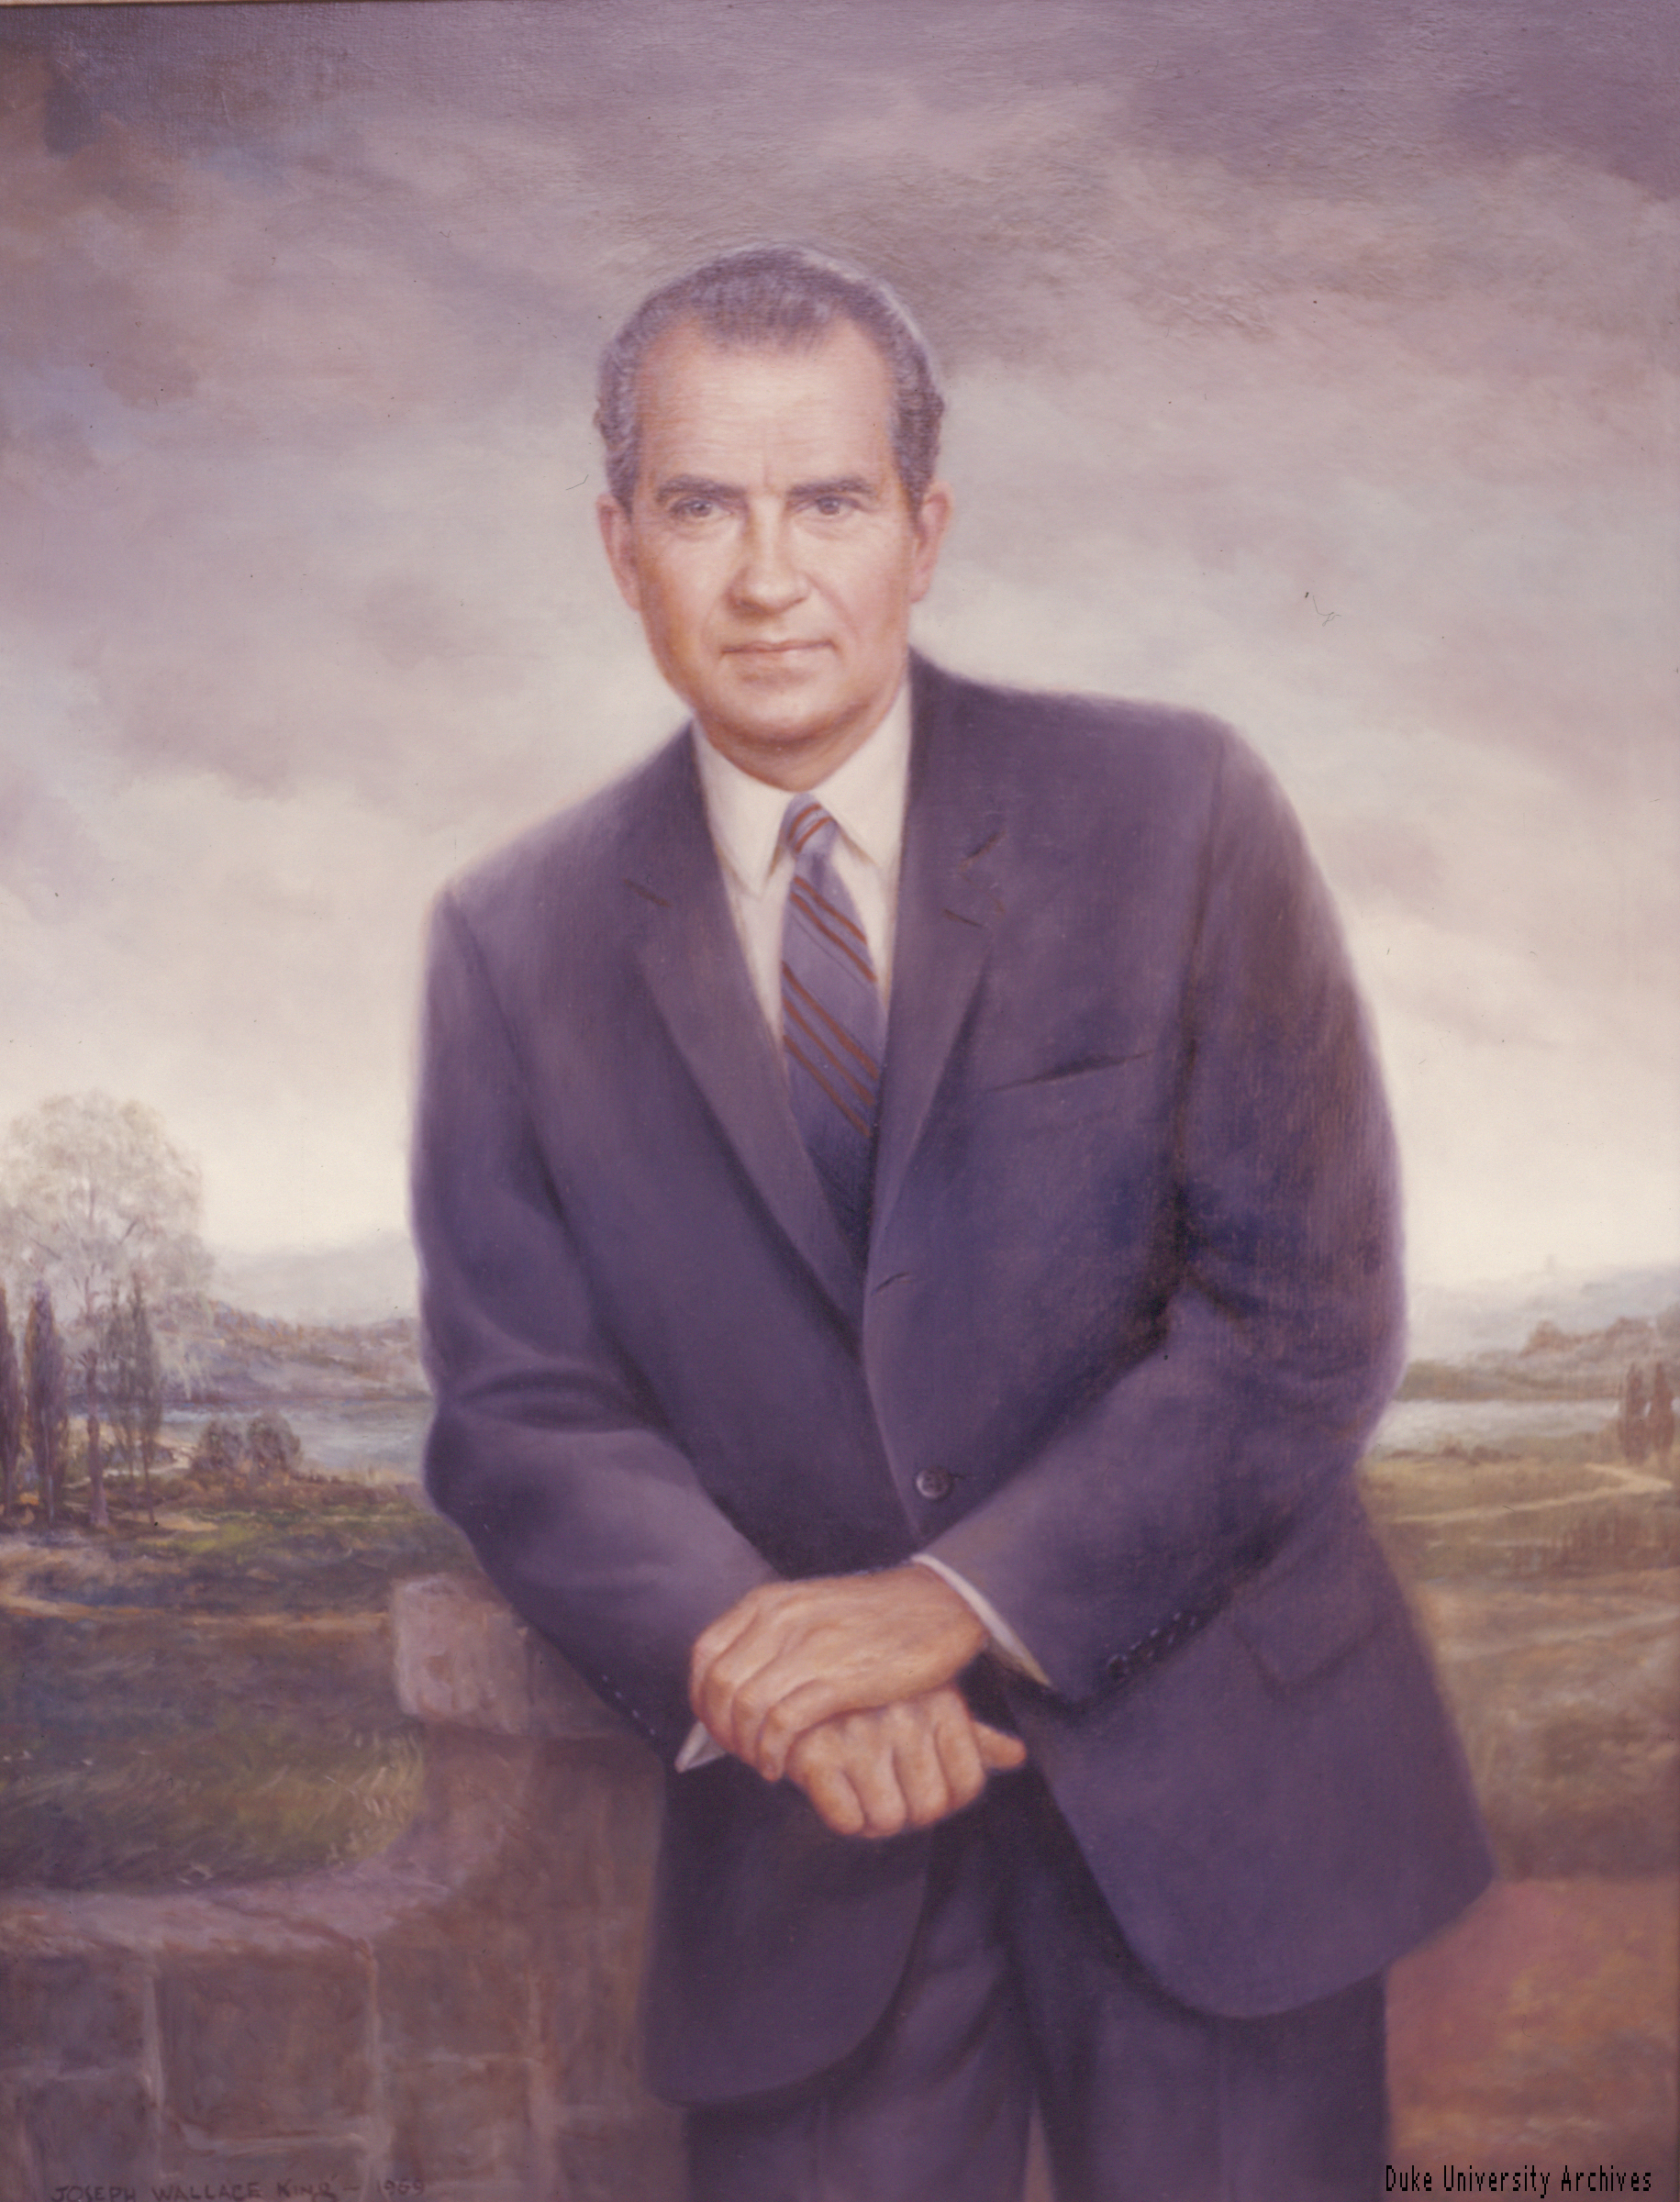 a biography of richard milhous nixon Richard milhous nixon 37th president of the united states (january 20, 1969 to august 9, 1974) nickname: none listed born: january 9, 1913, in yorba linda, california.